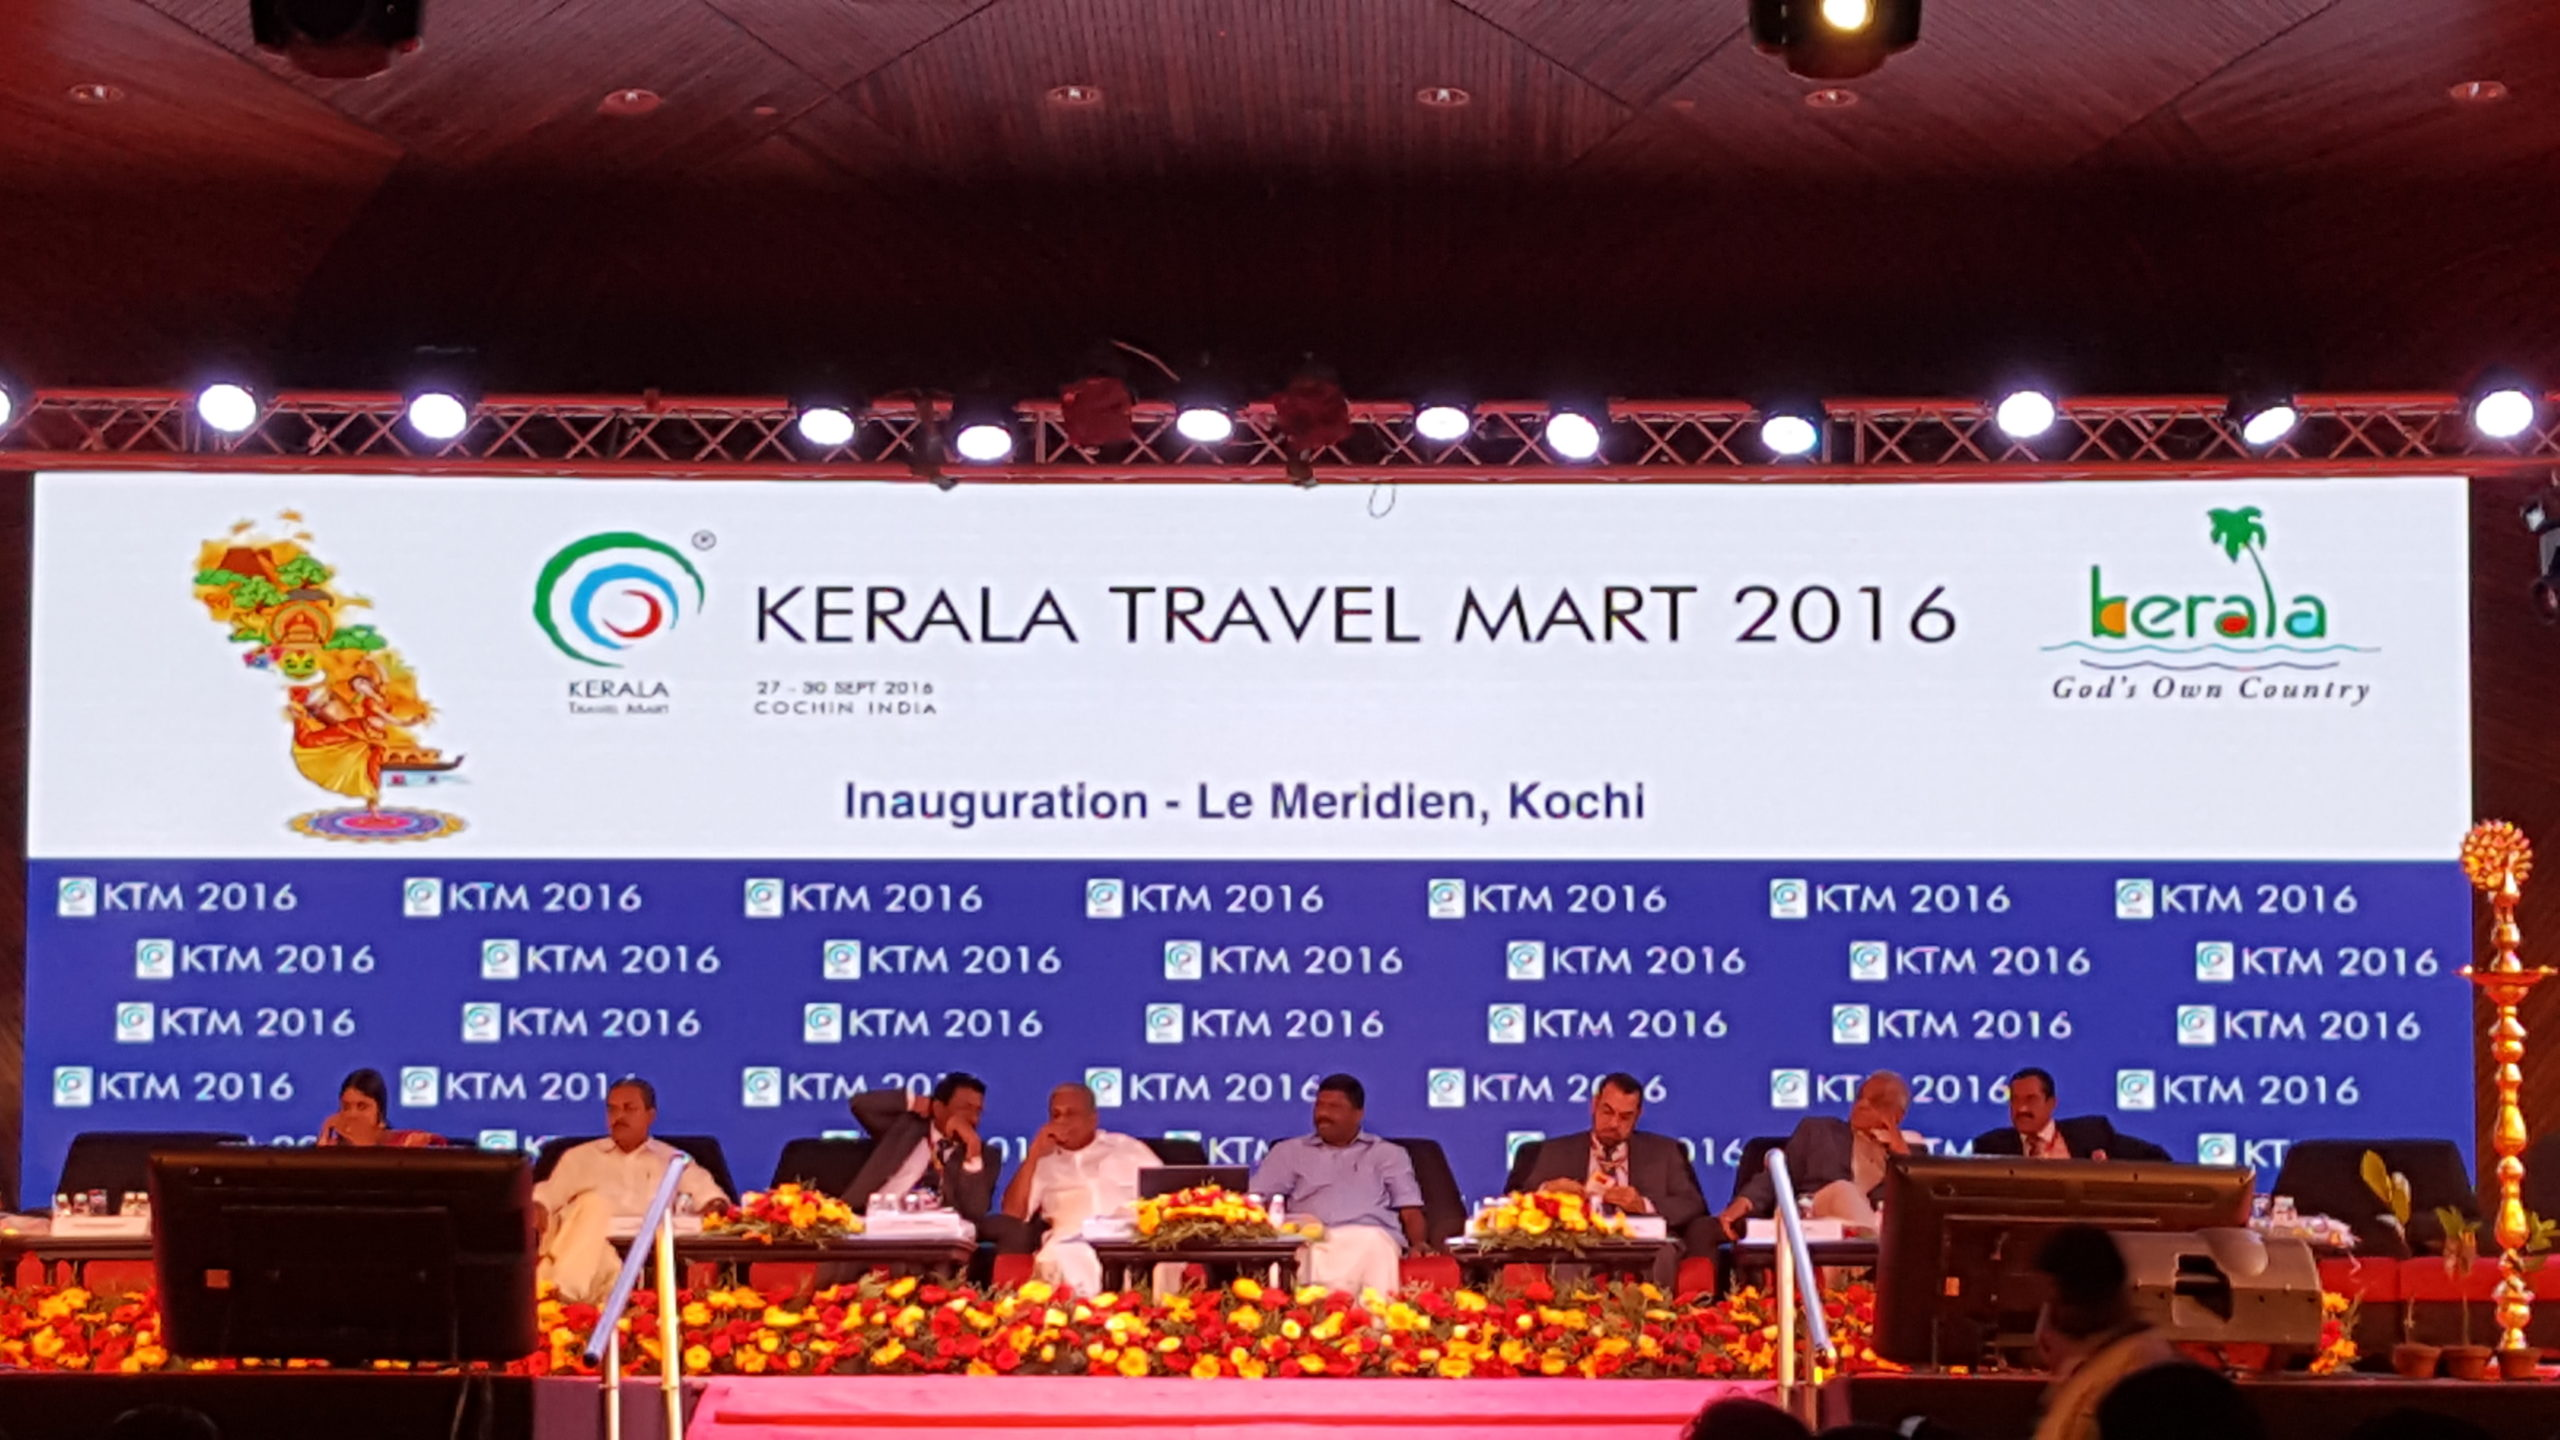 Kerala Travel Mart September 2016